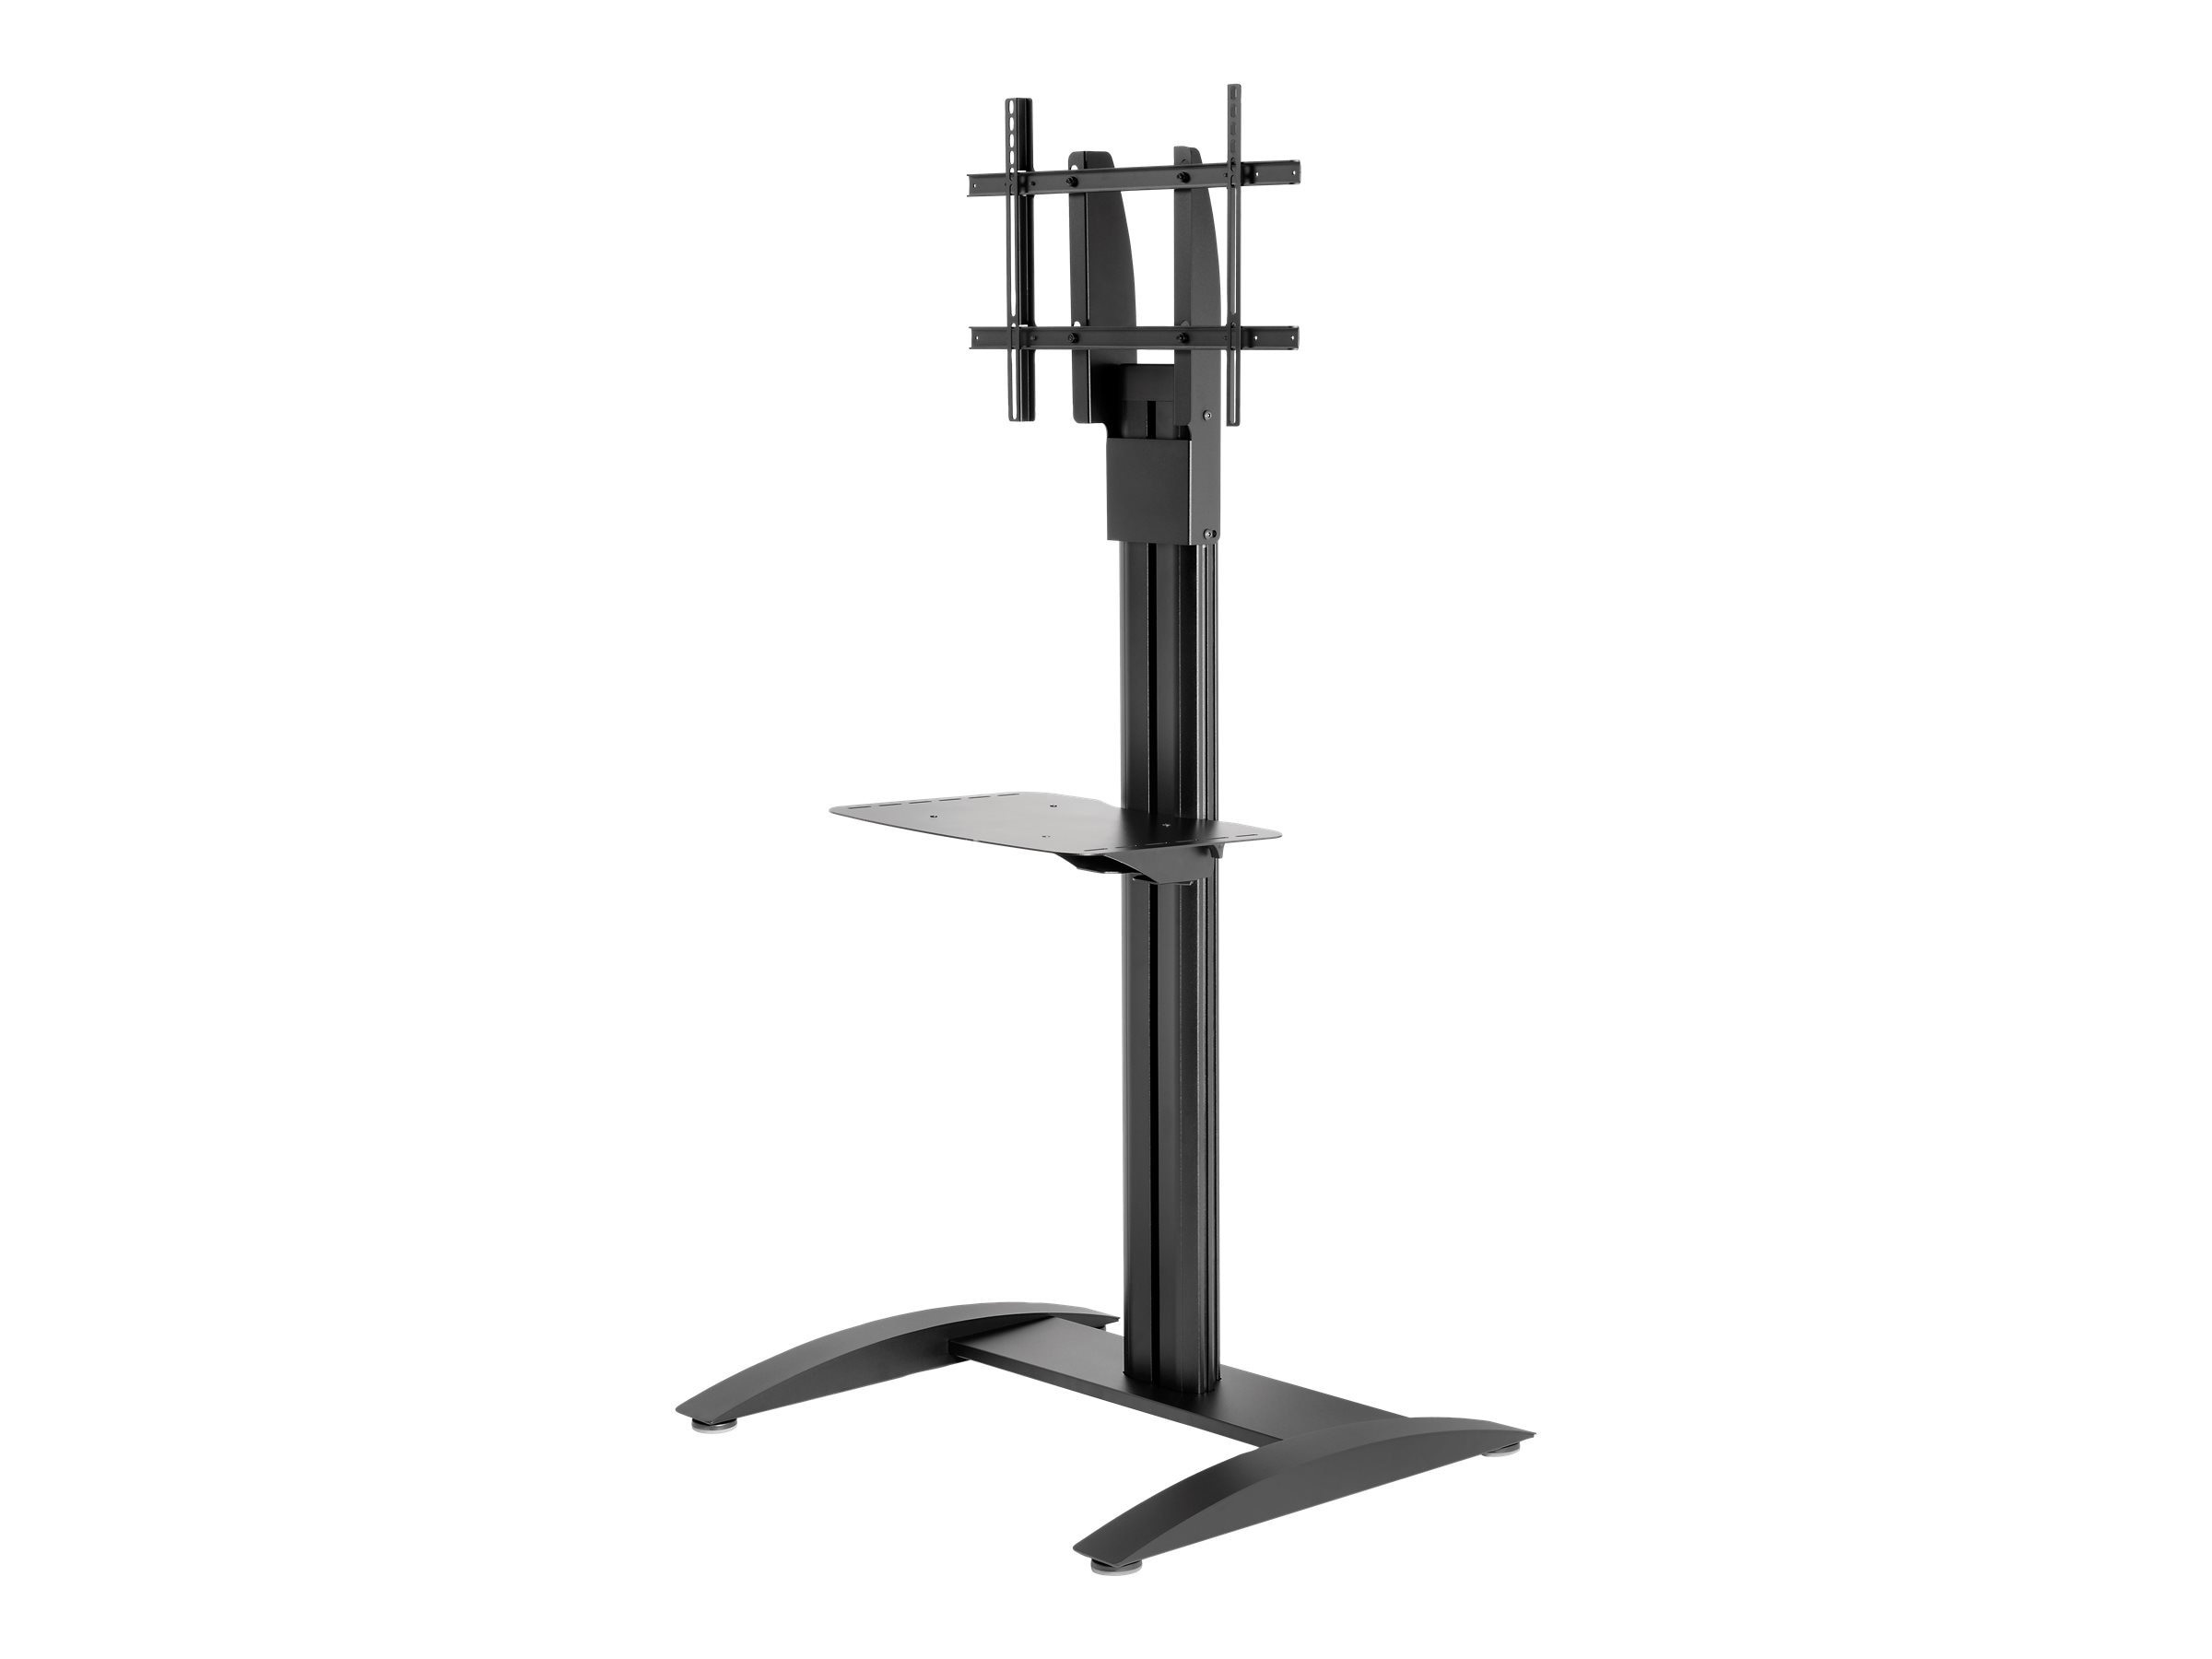 Peerless Flat Panel Stand for 32-65 Displays, SS560M, 14960969, Stands & Mounts - AV